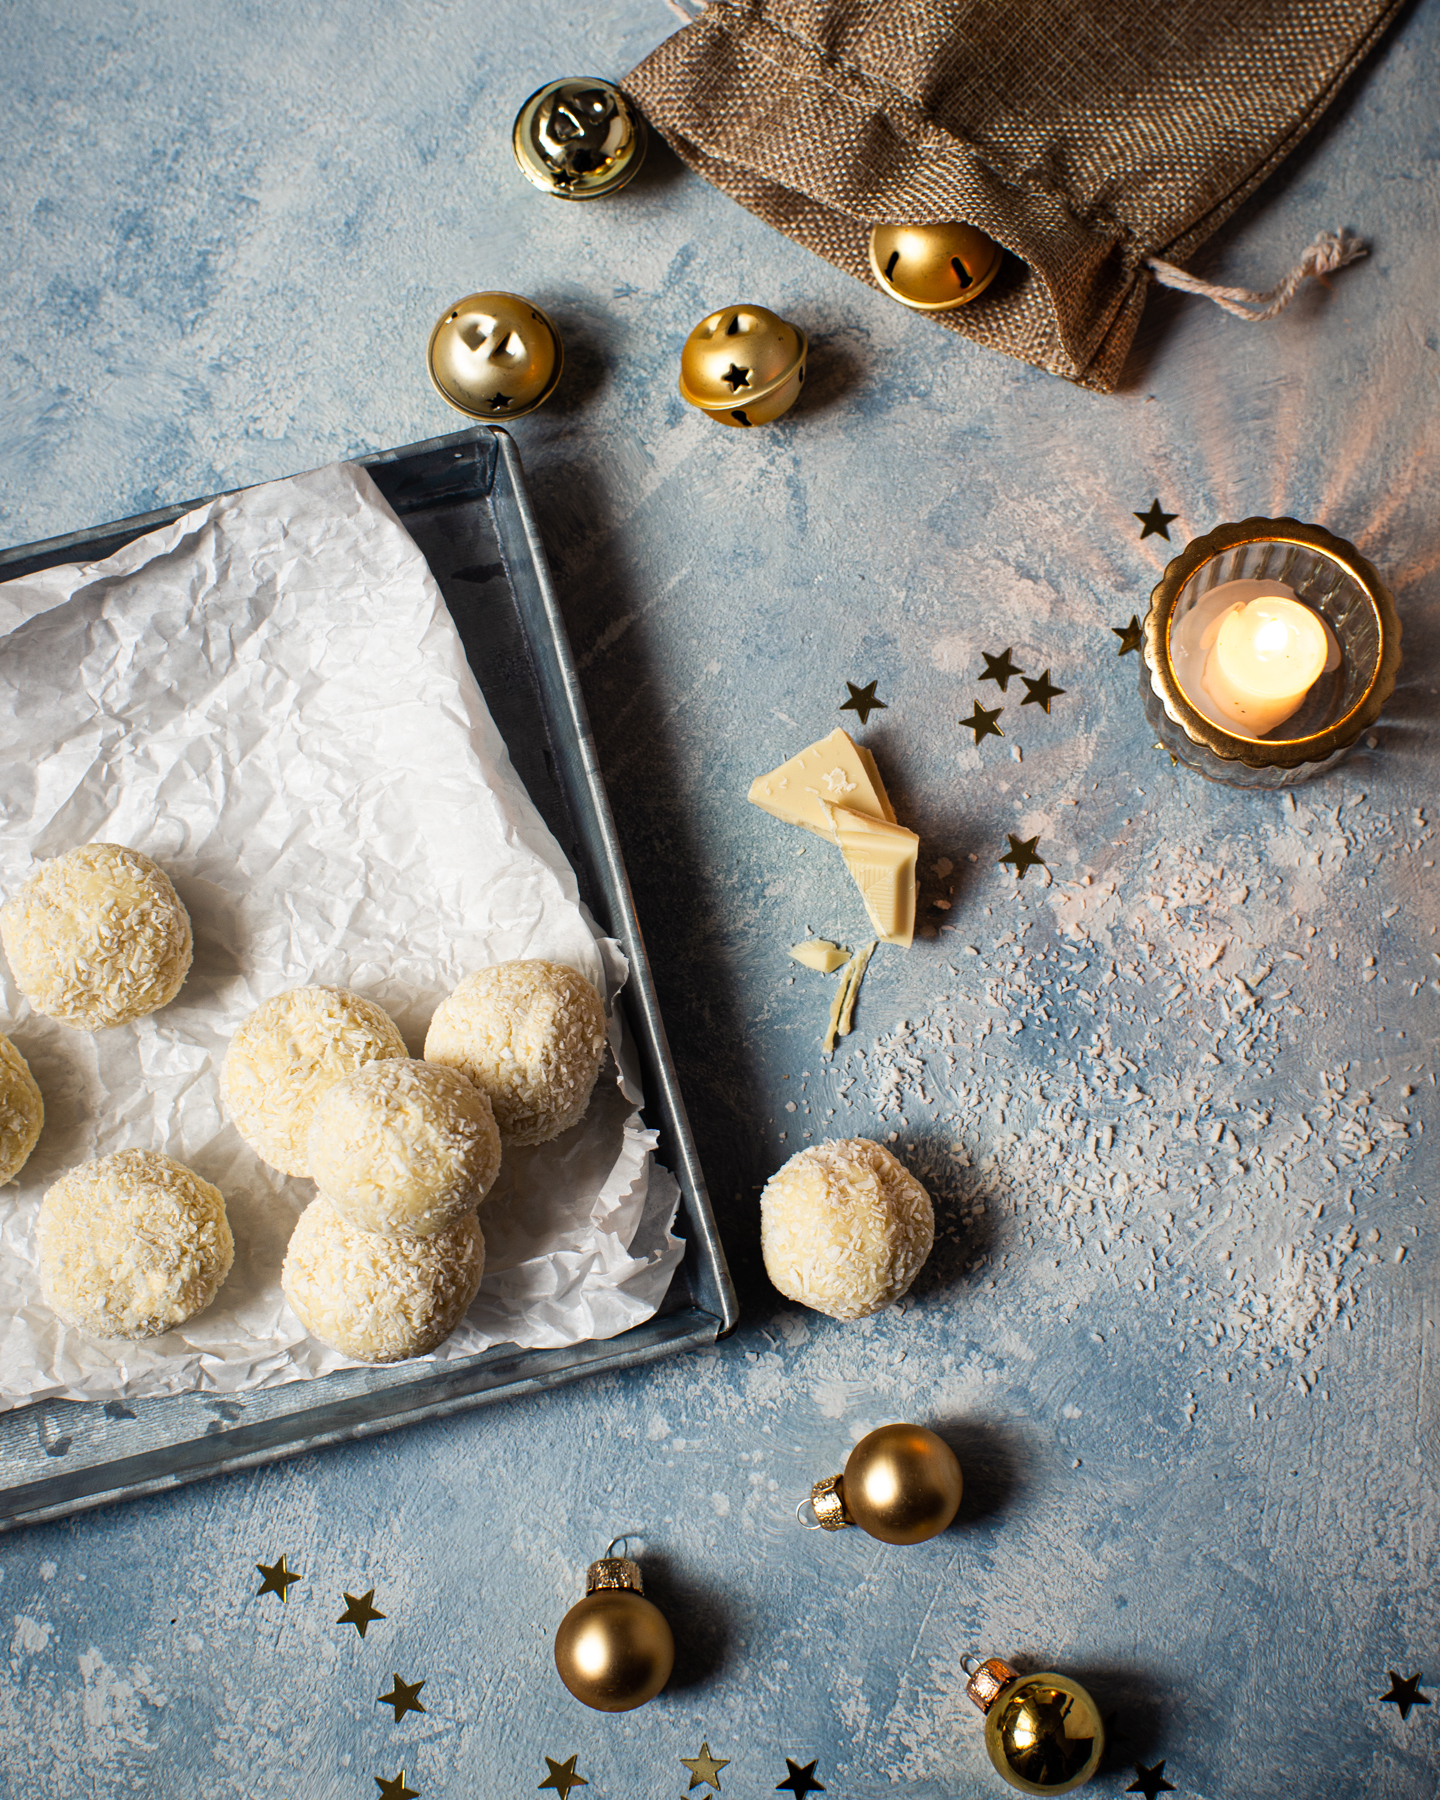 White chocolate & coconut truffles